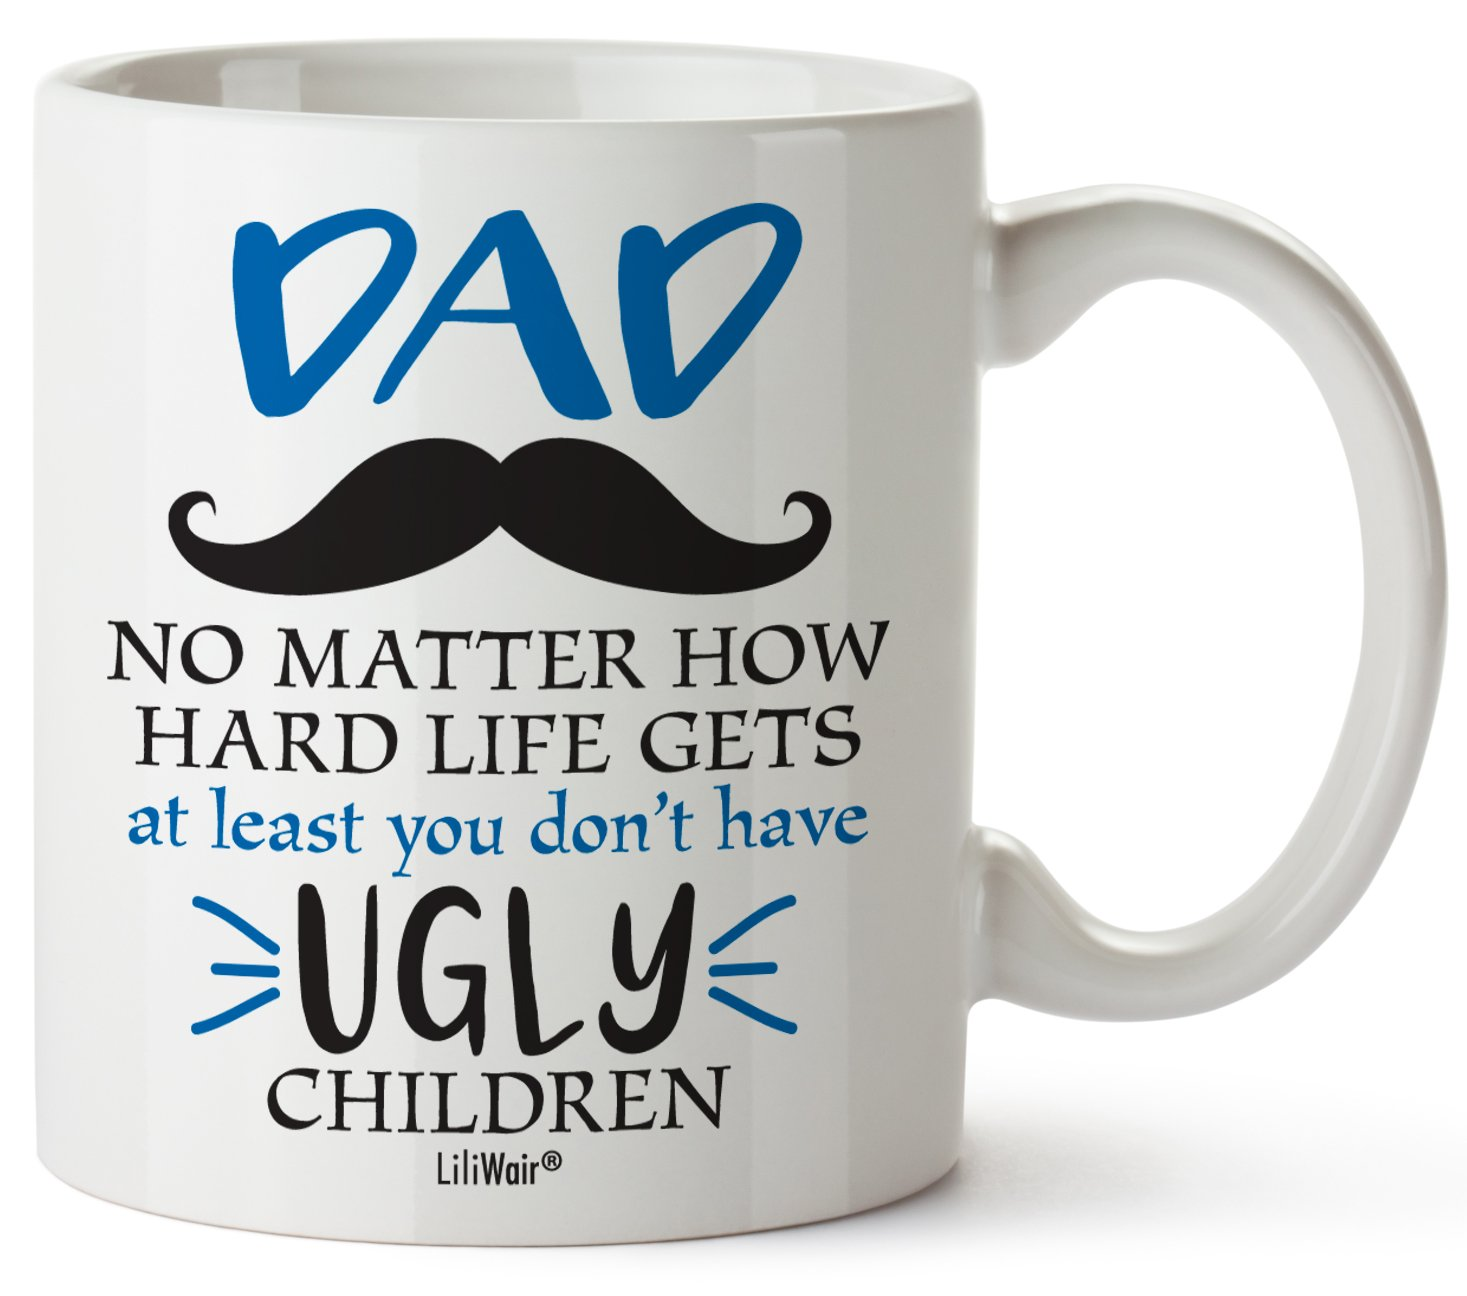 Fathers Day Gifts, Gifts For Dad From Daughter Son, Christmas Birthday Gift Coffee Mug, Best Cool Happy Funny First Mugs For Father, Daddy Stepdad Stepfather Bonus Step Dad's Presents Cup From Kids by LiliWair (Image #1)